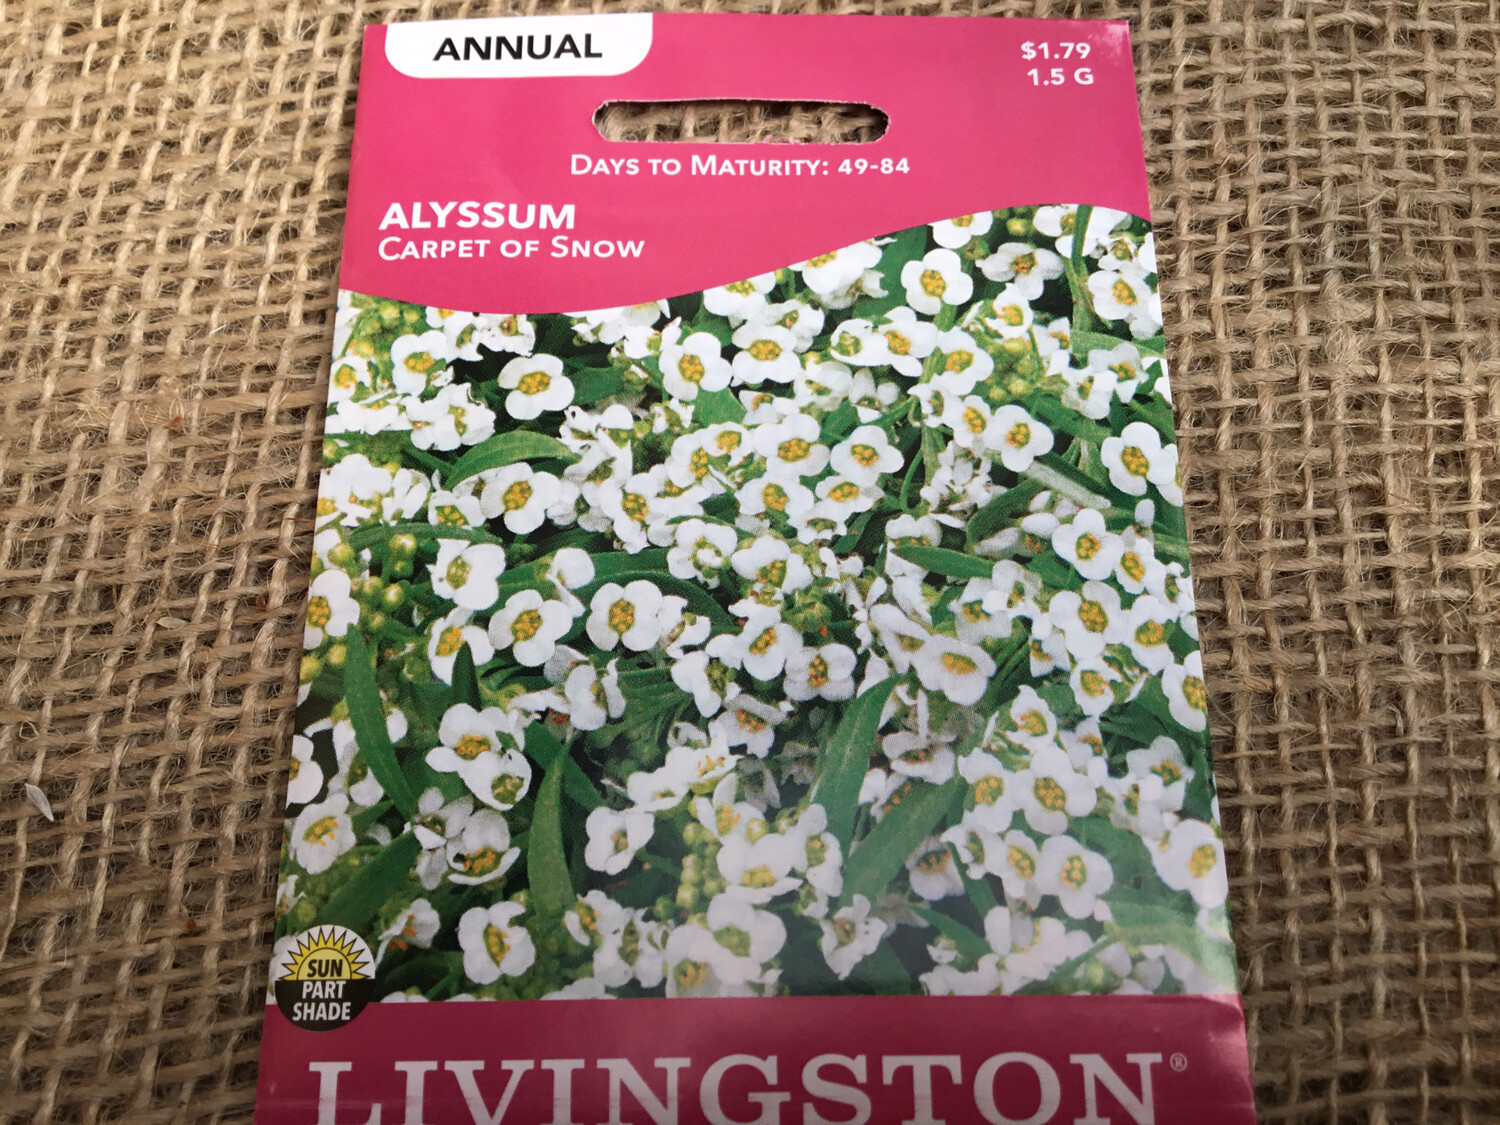 Alyssum Carpet of Snow (Seed) $1.79